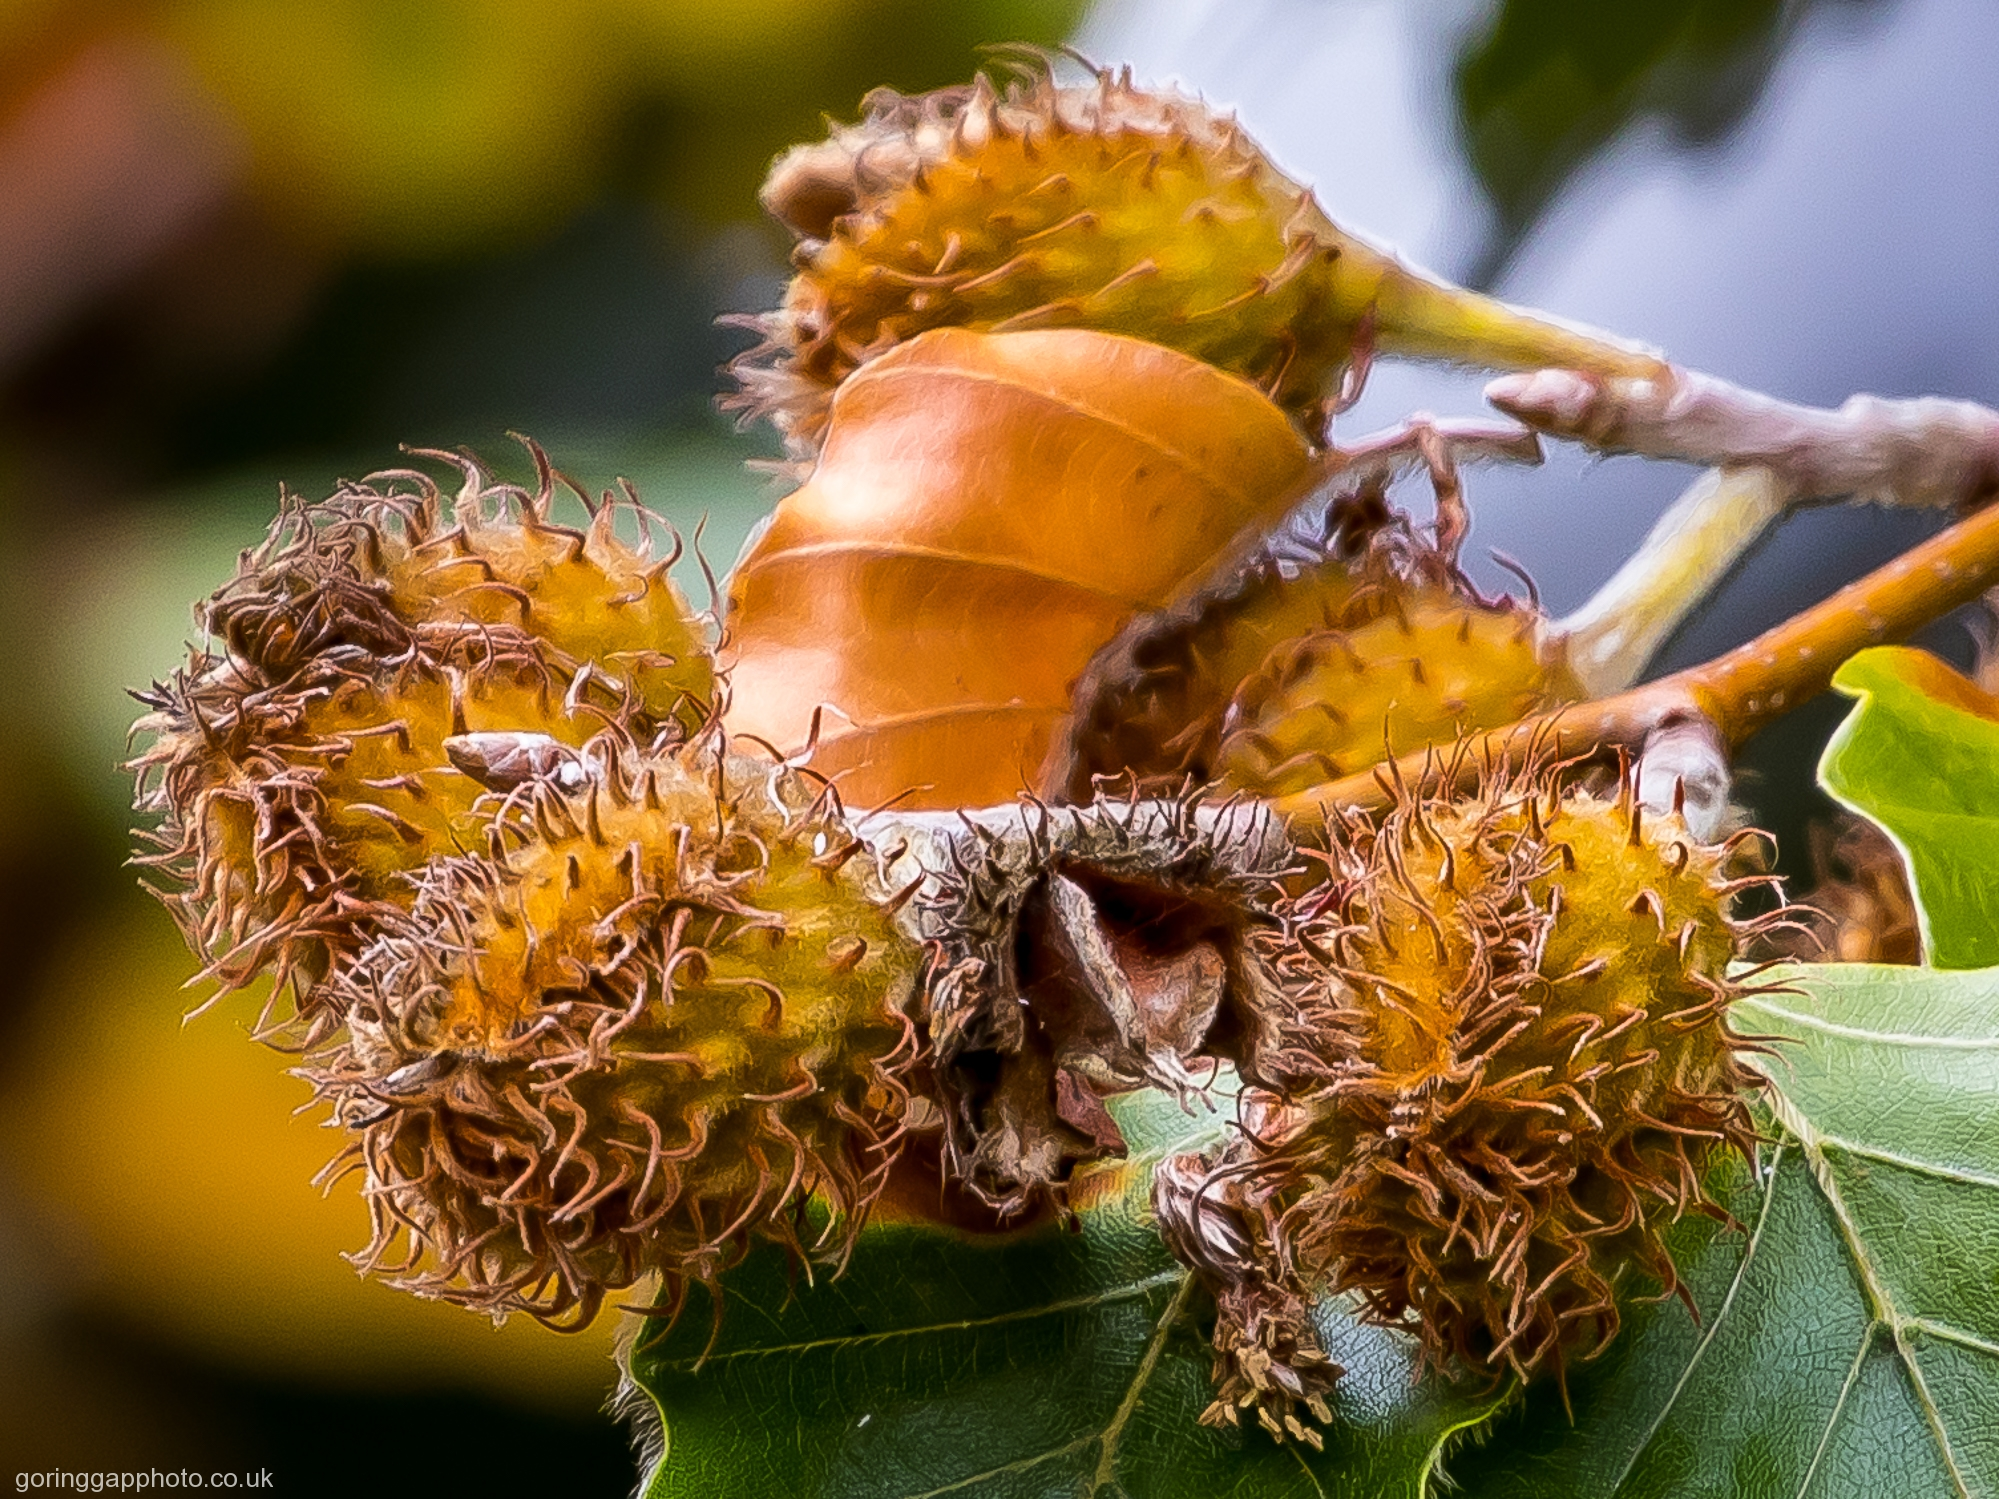 BEECH NUTS by Chris Stevens